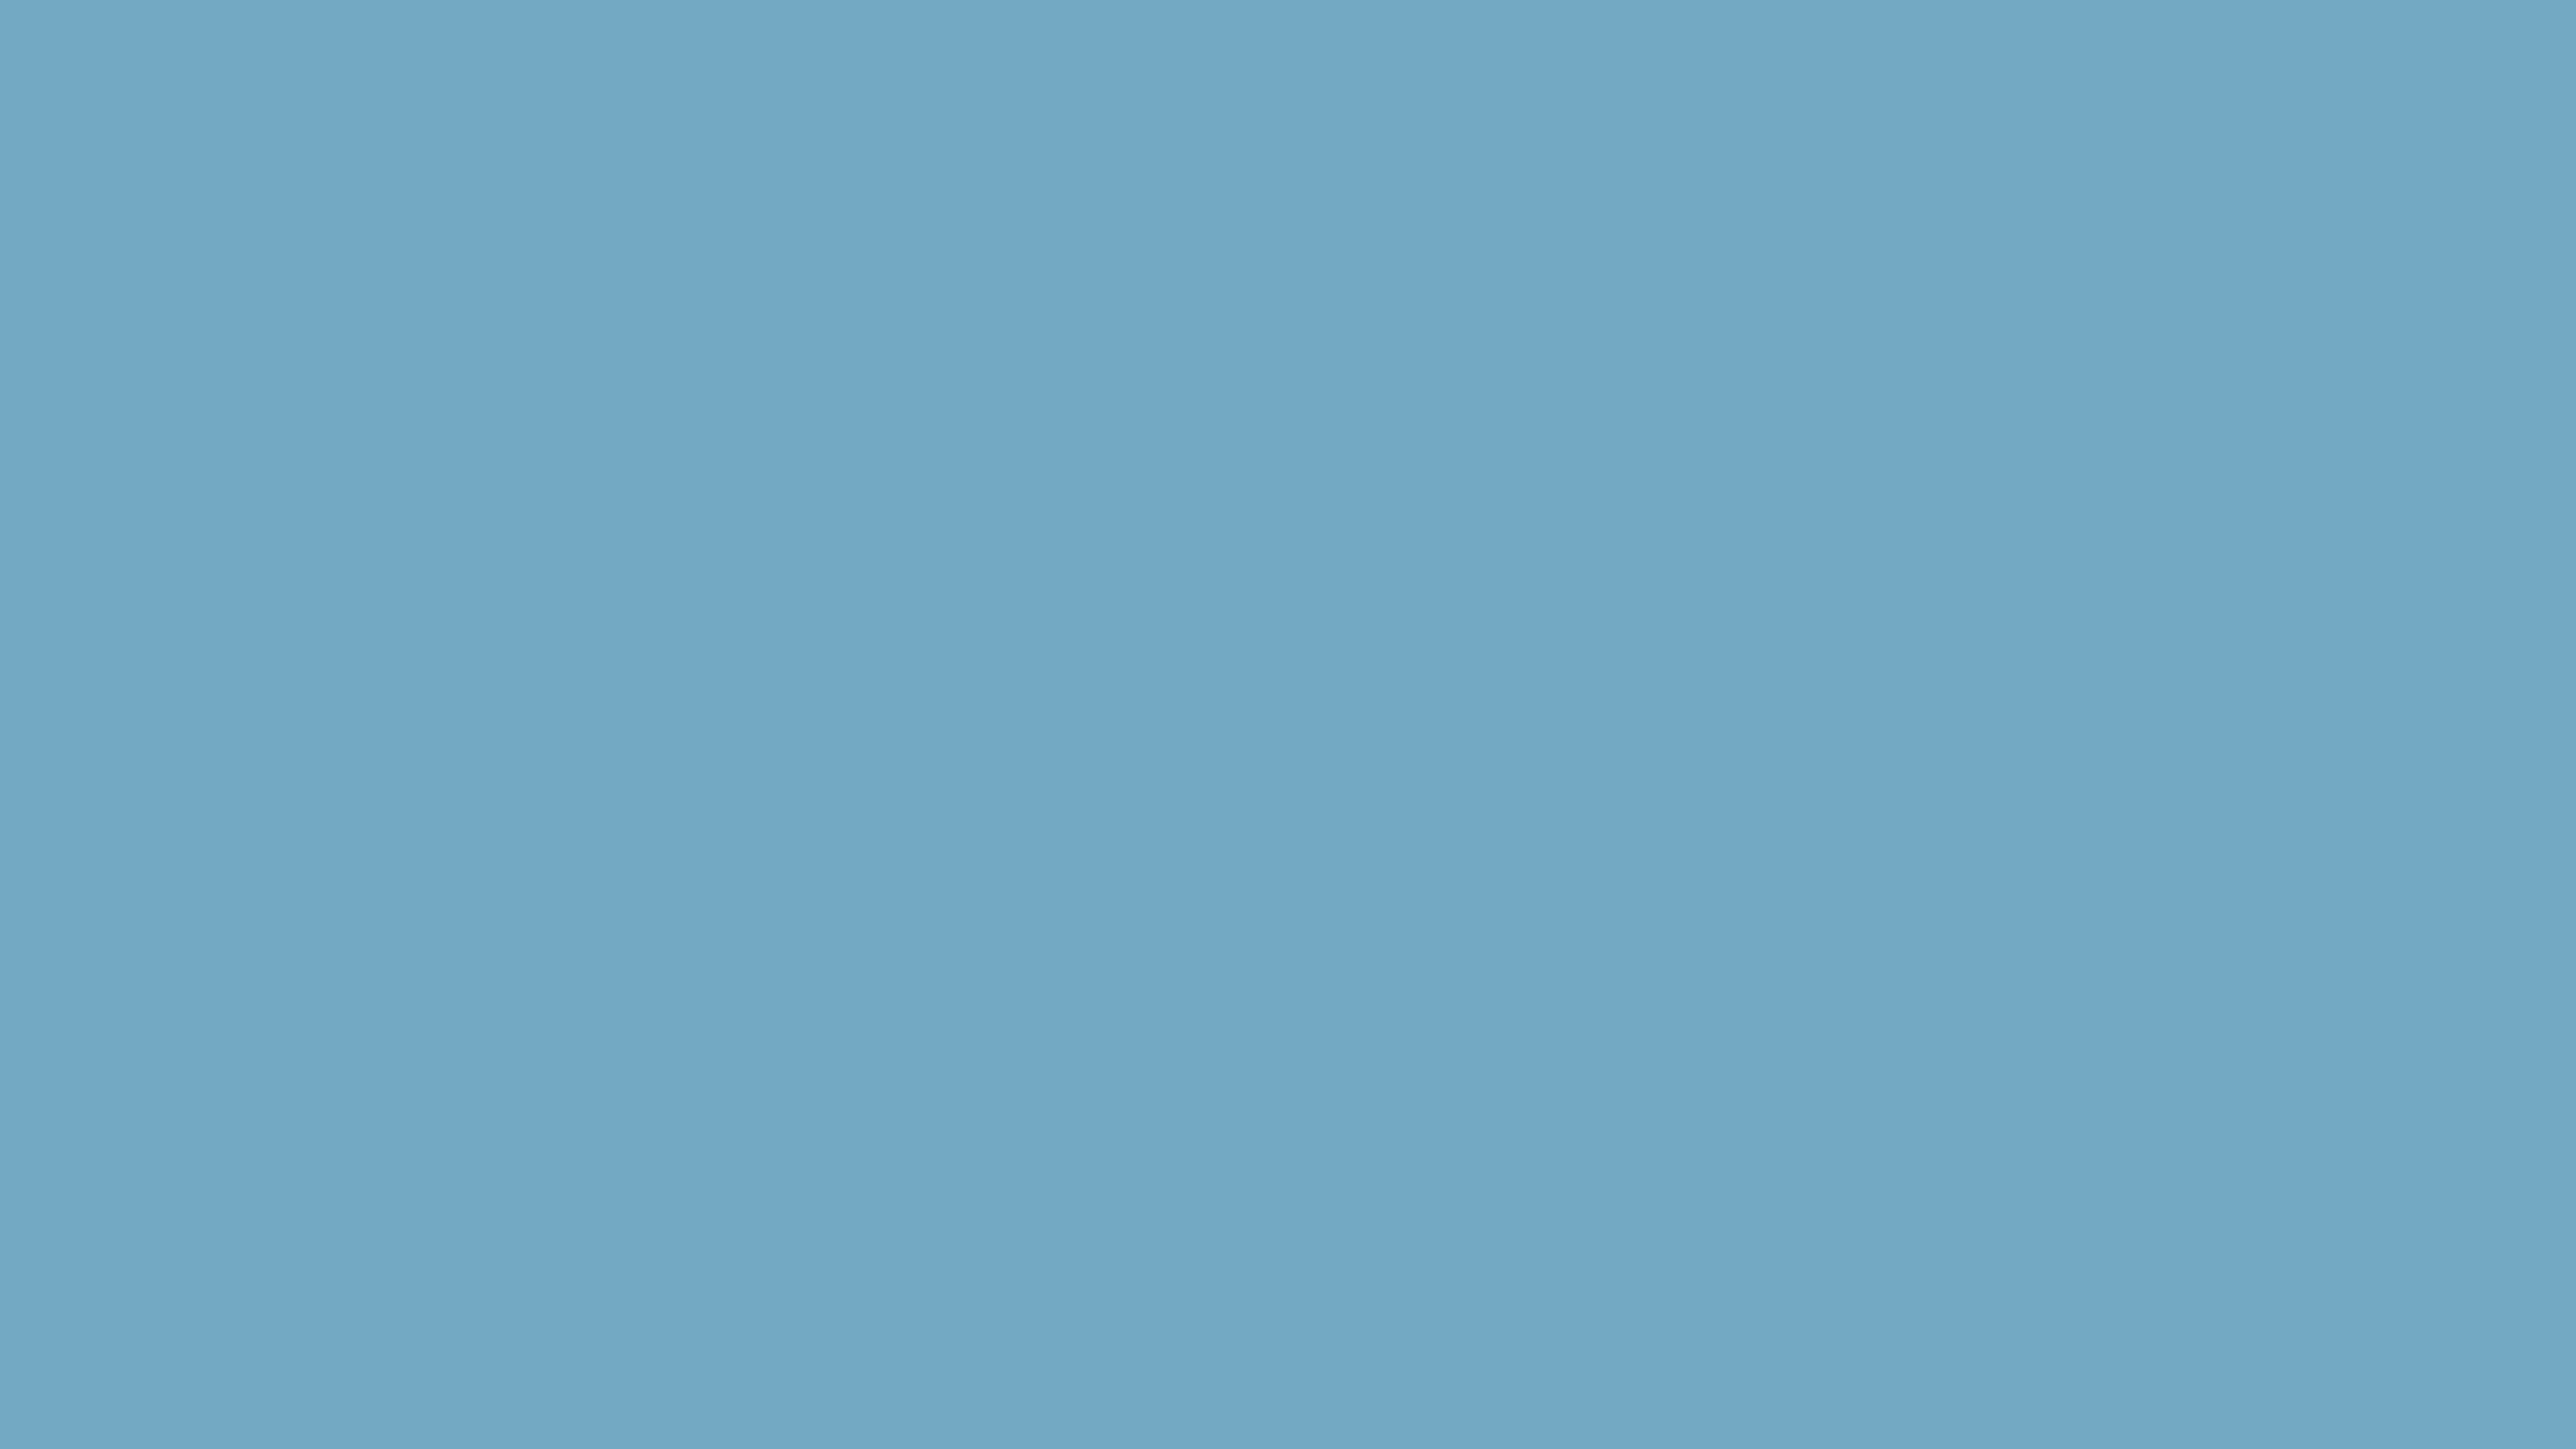 3840x2160 Moonstone Blue Solid Color Background